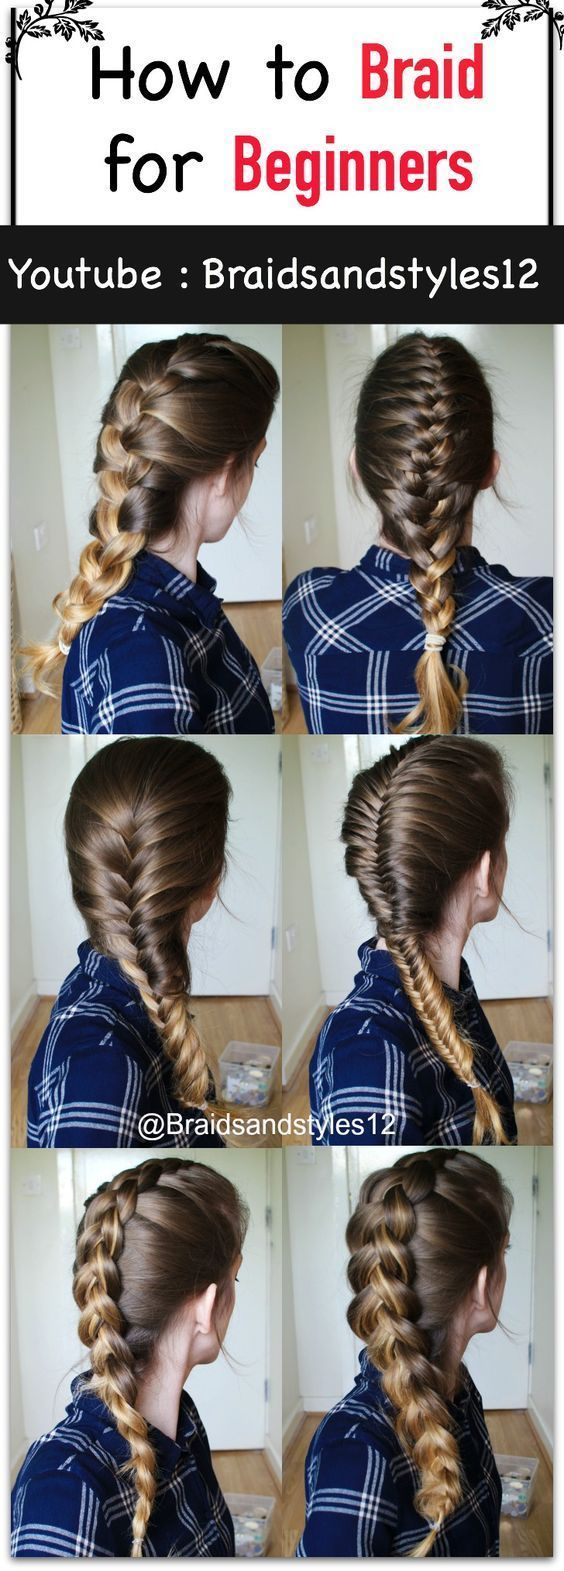 Makeup Ideas: 30 Best Braided Hairstyles That Turn Heads - Trend To Wear #makeuptrends